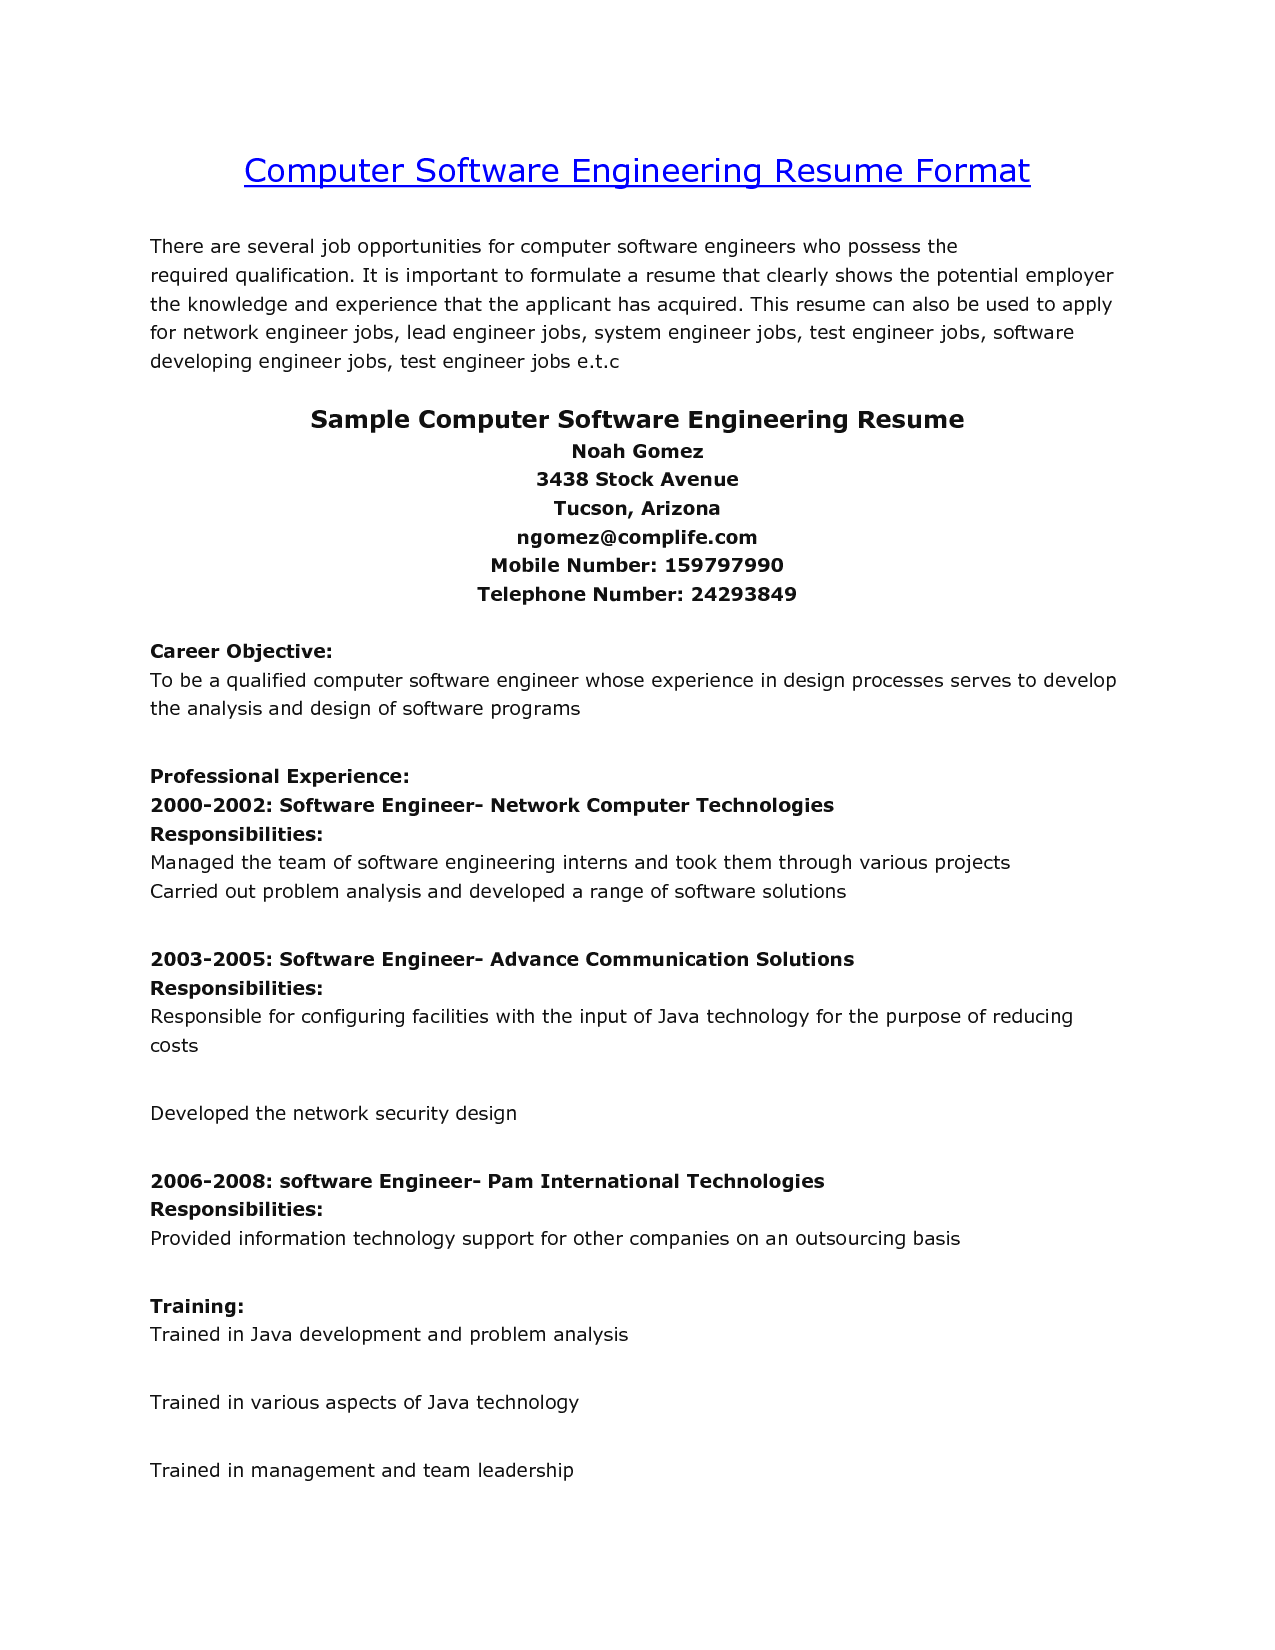 Computer Engineering Resume Examples - Examples of Resumes